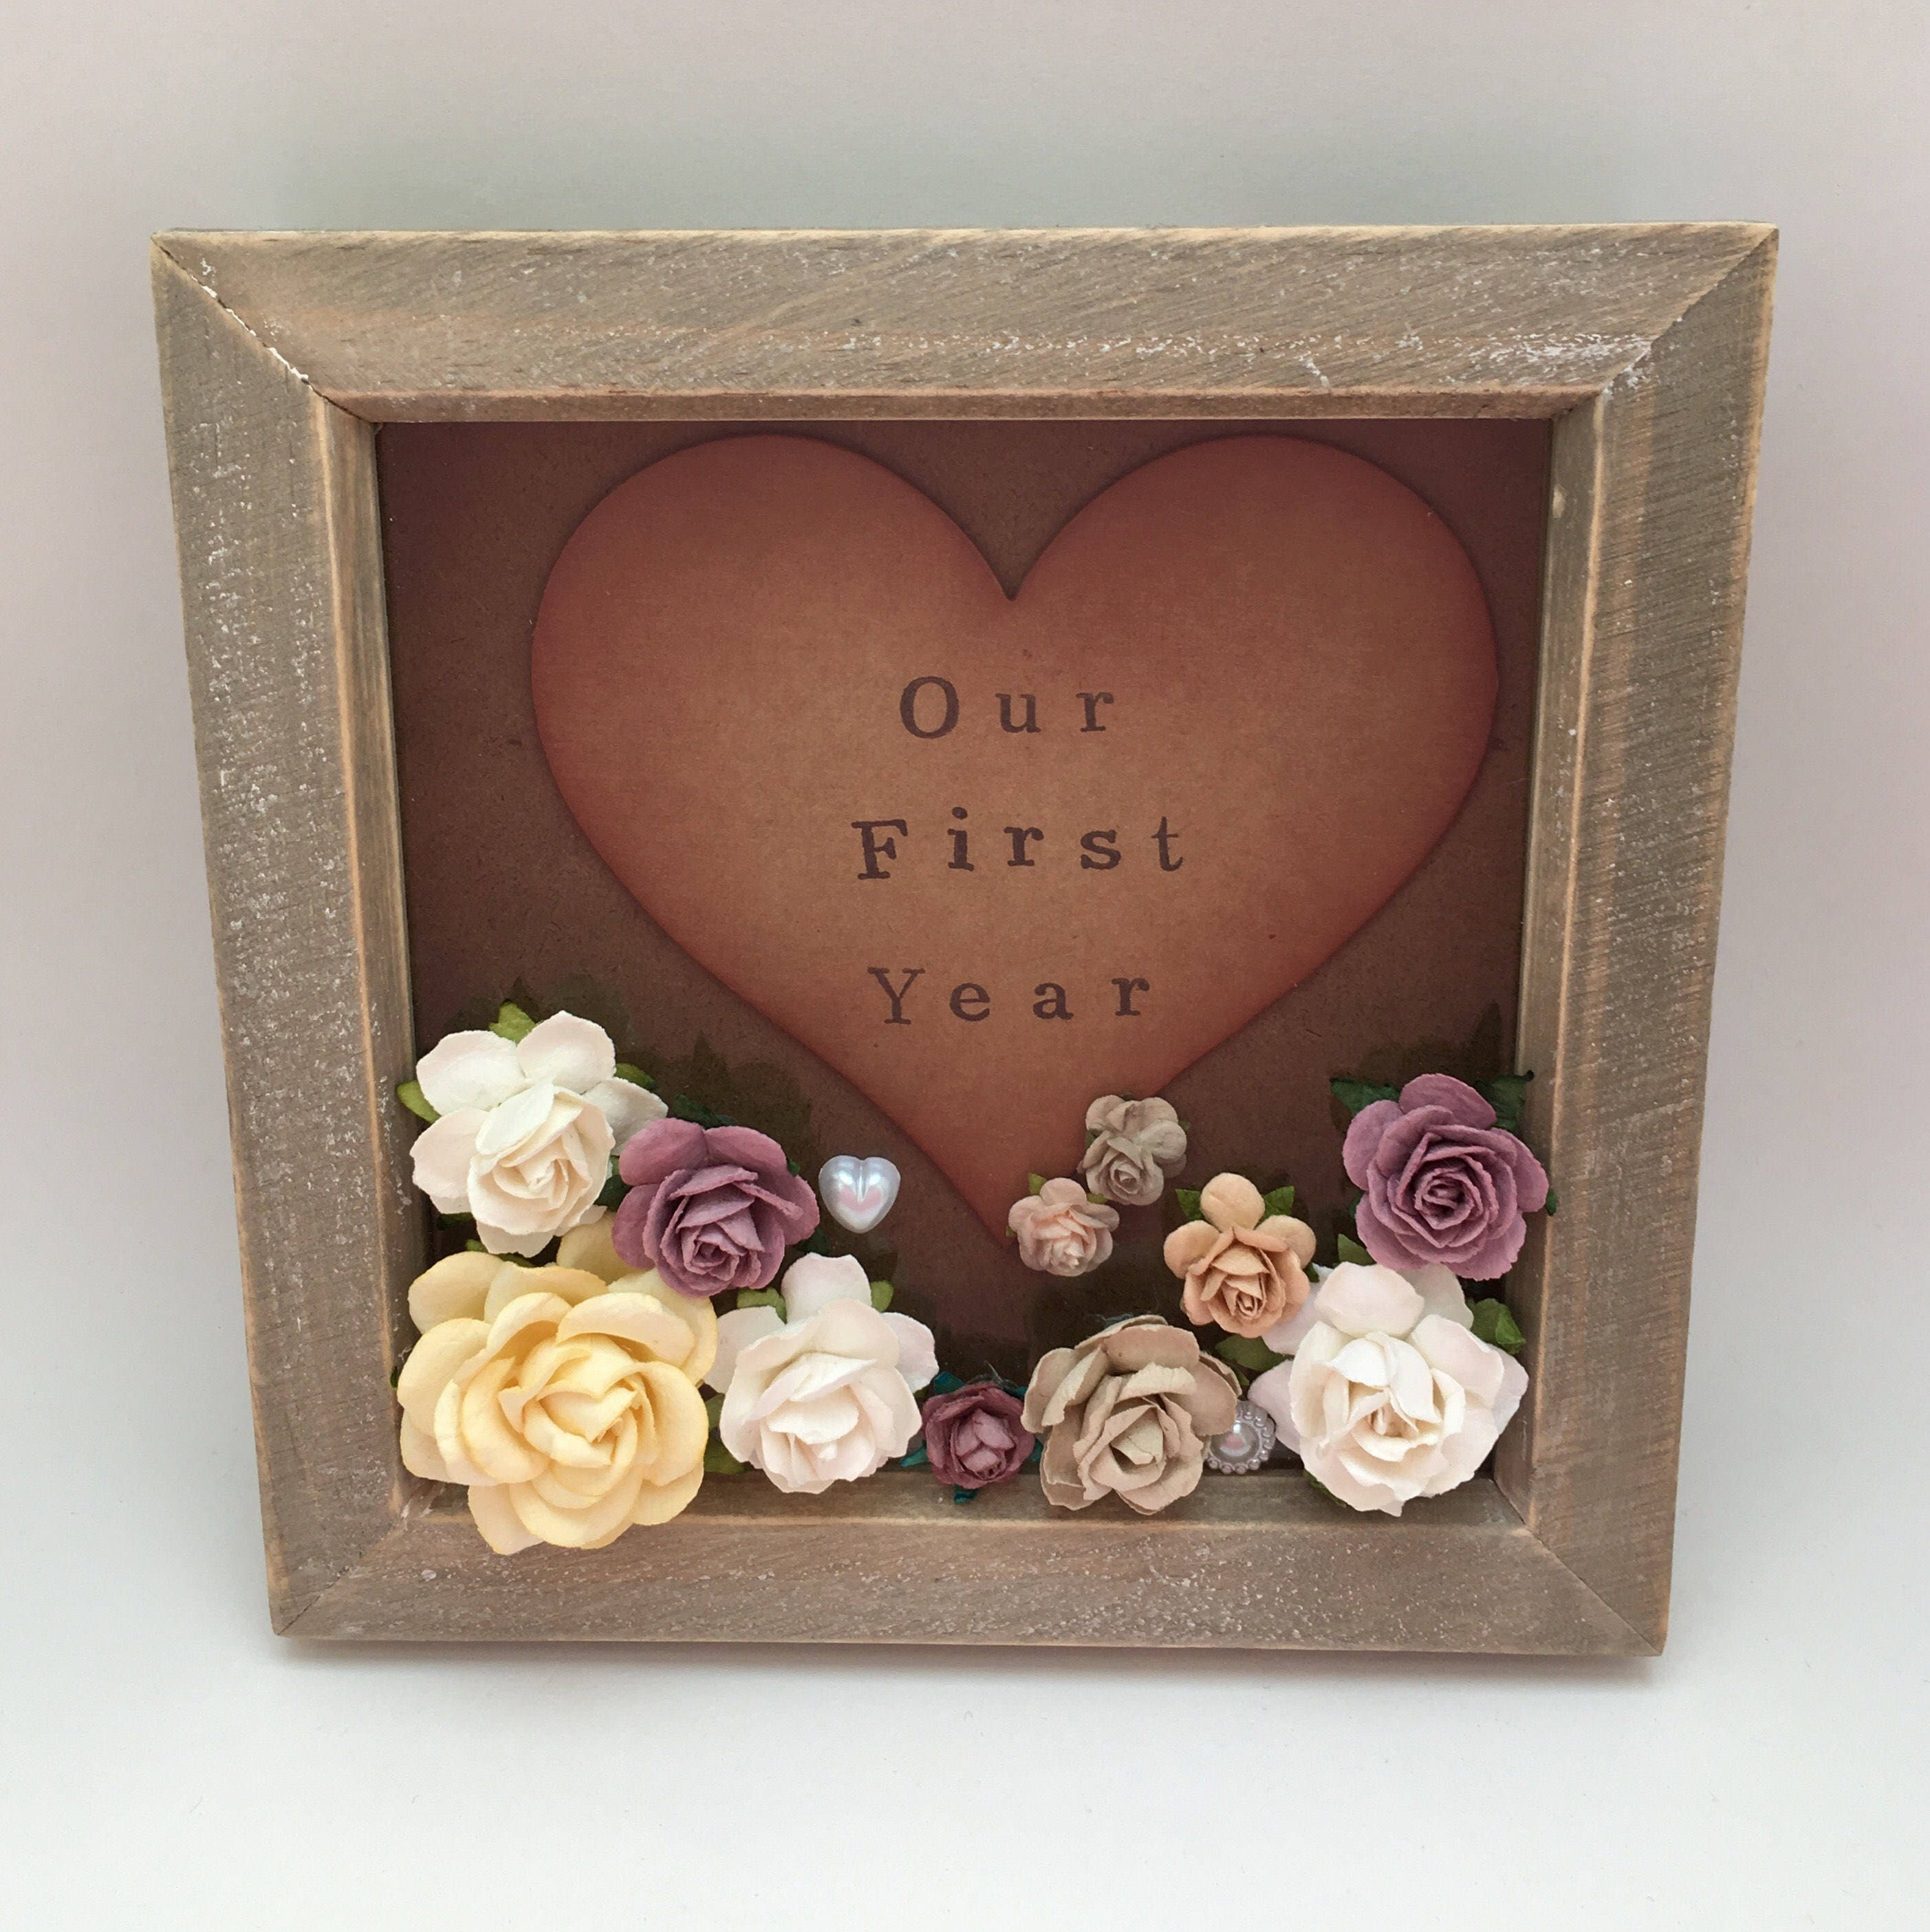 Our first year anniversary gift 1st first paper wedding anniversary gift for her Gift for a wife shabby chic decor paper flowers 3d picture